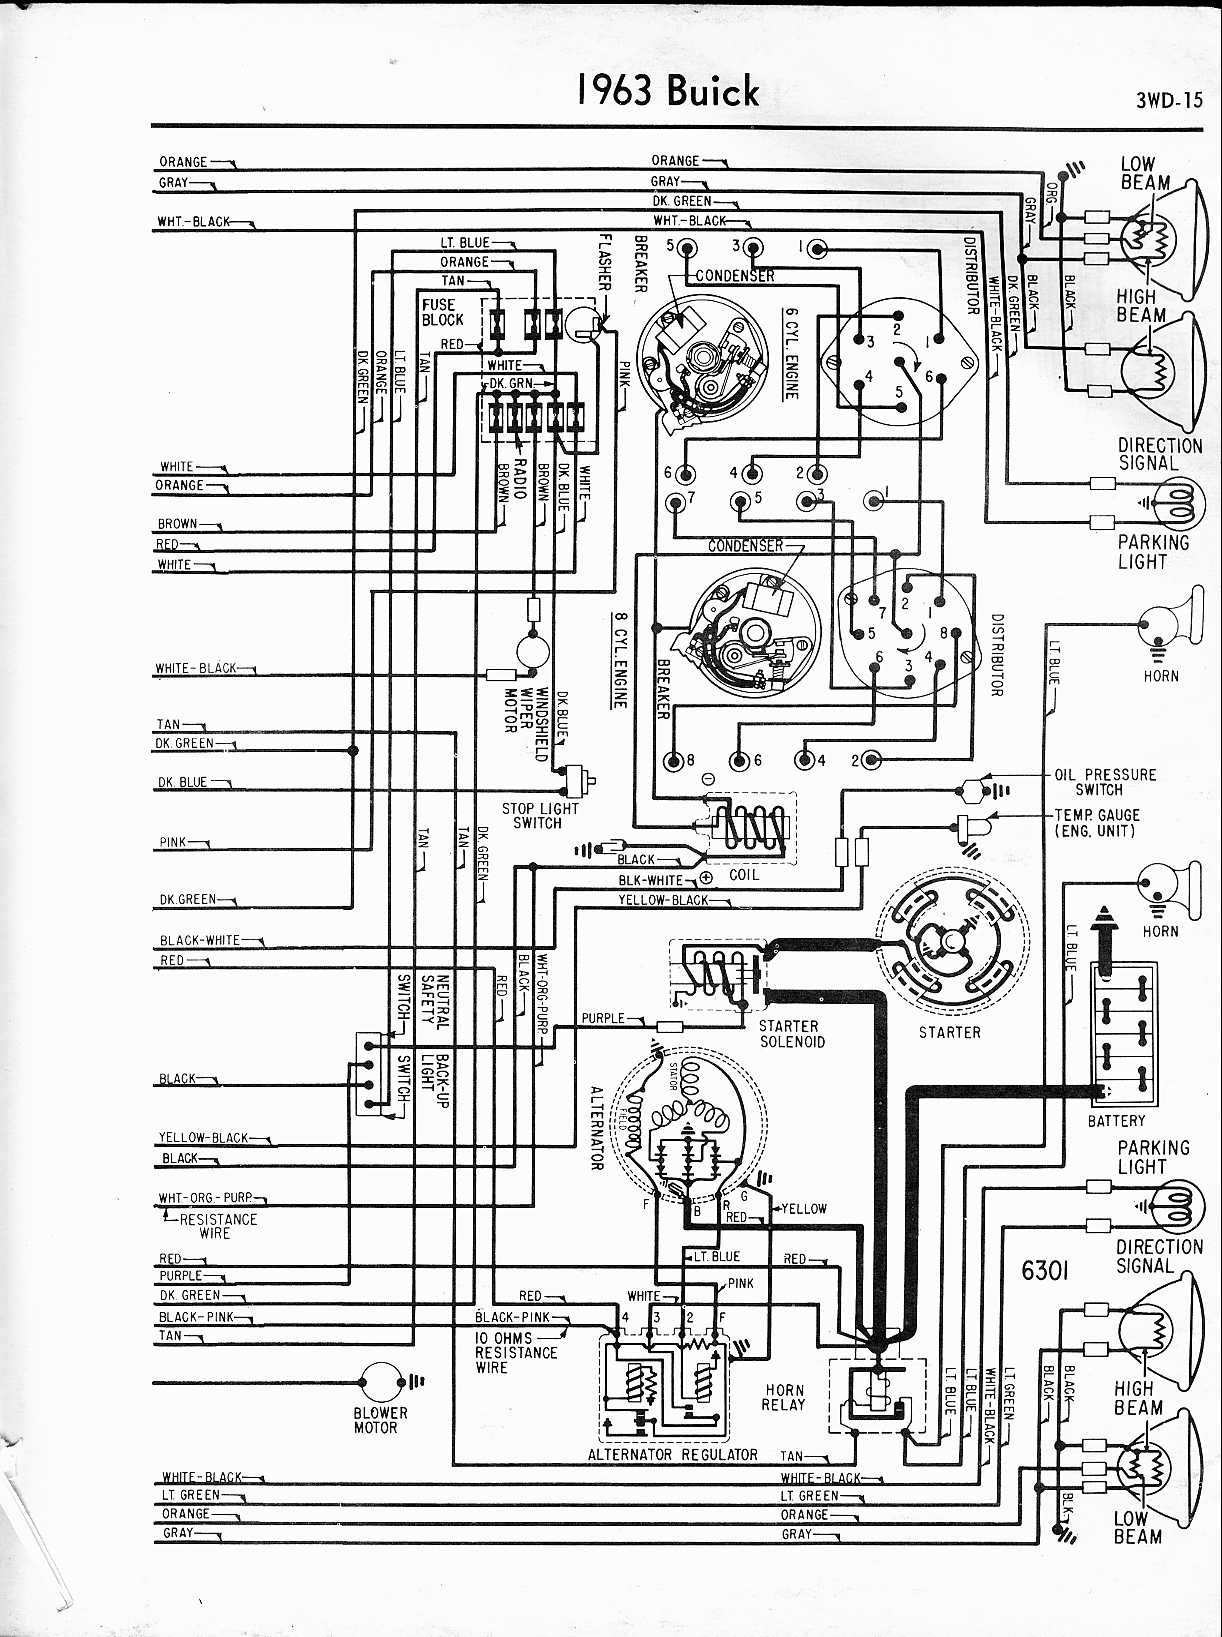 MWireBuic65_3WD 015 buick wiring diagrams 1957 1965 1957 buick special fuse box location at panicattacktreatment.co